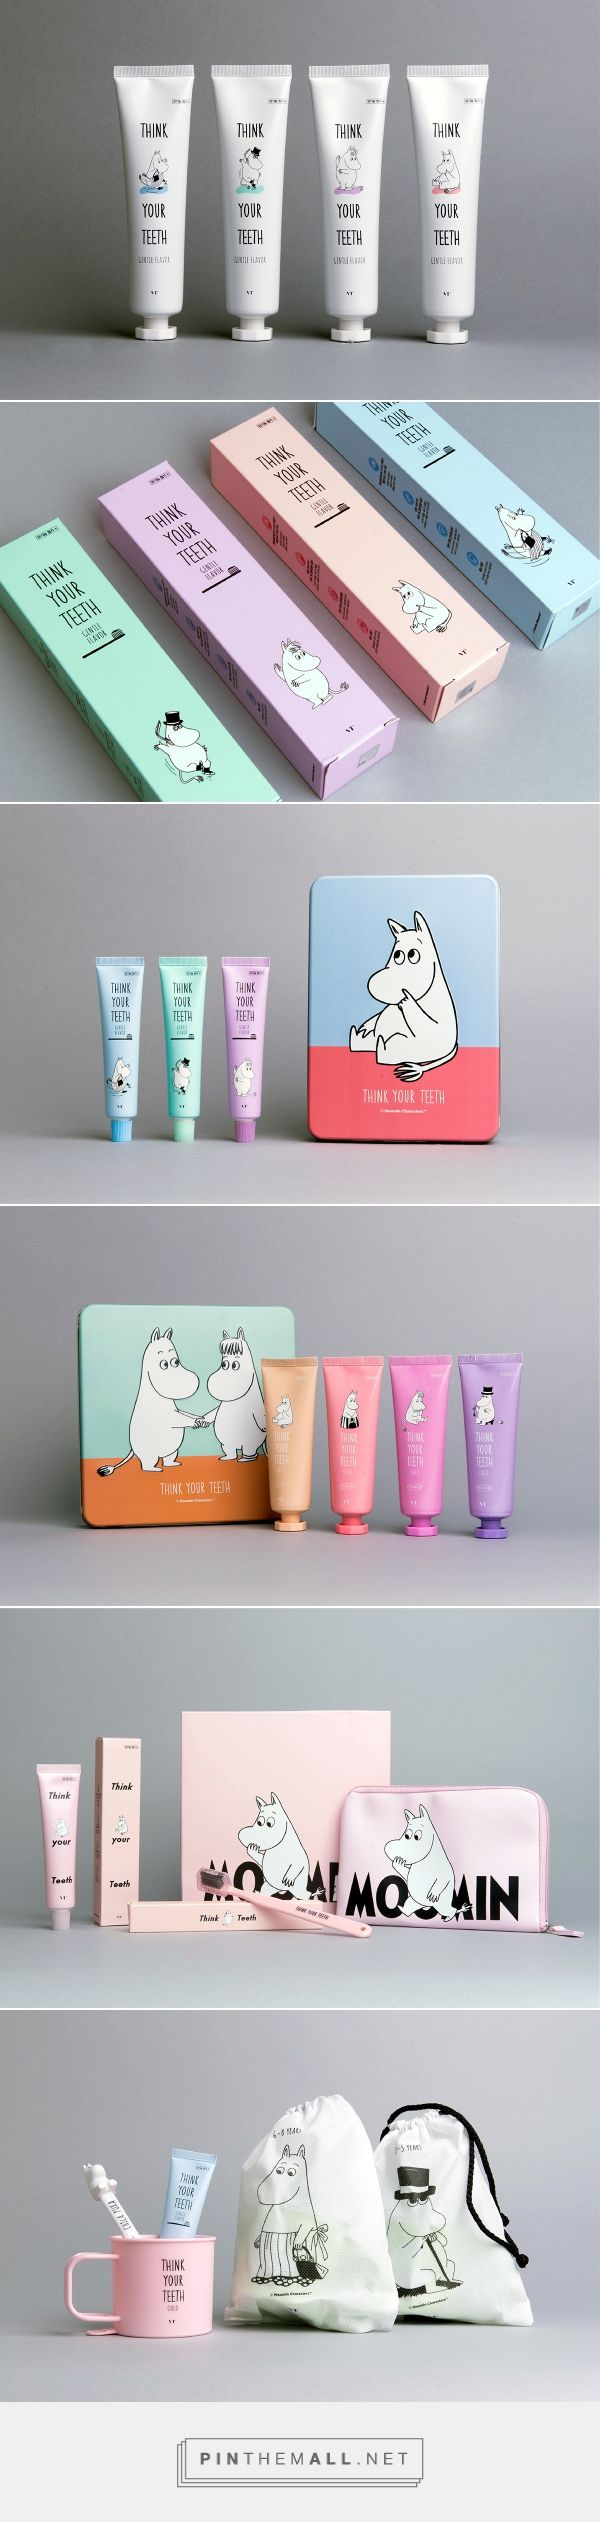 Graphic design, branding and packaging for Vant36.5 on Behance by Eggplant Factory Seoul, Korea curated by Packaging Diva PD. Some cute Moomin packaging for the smile file : )